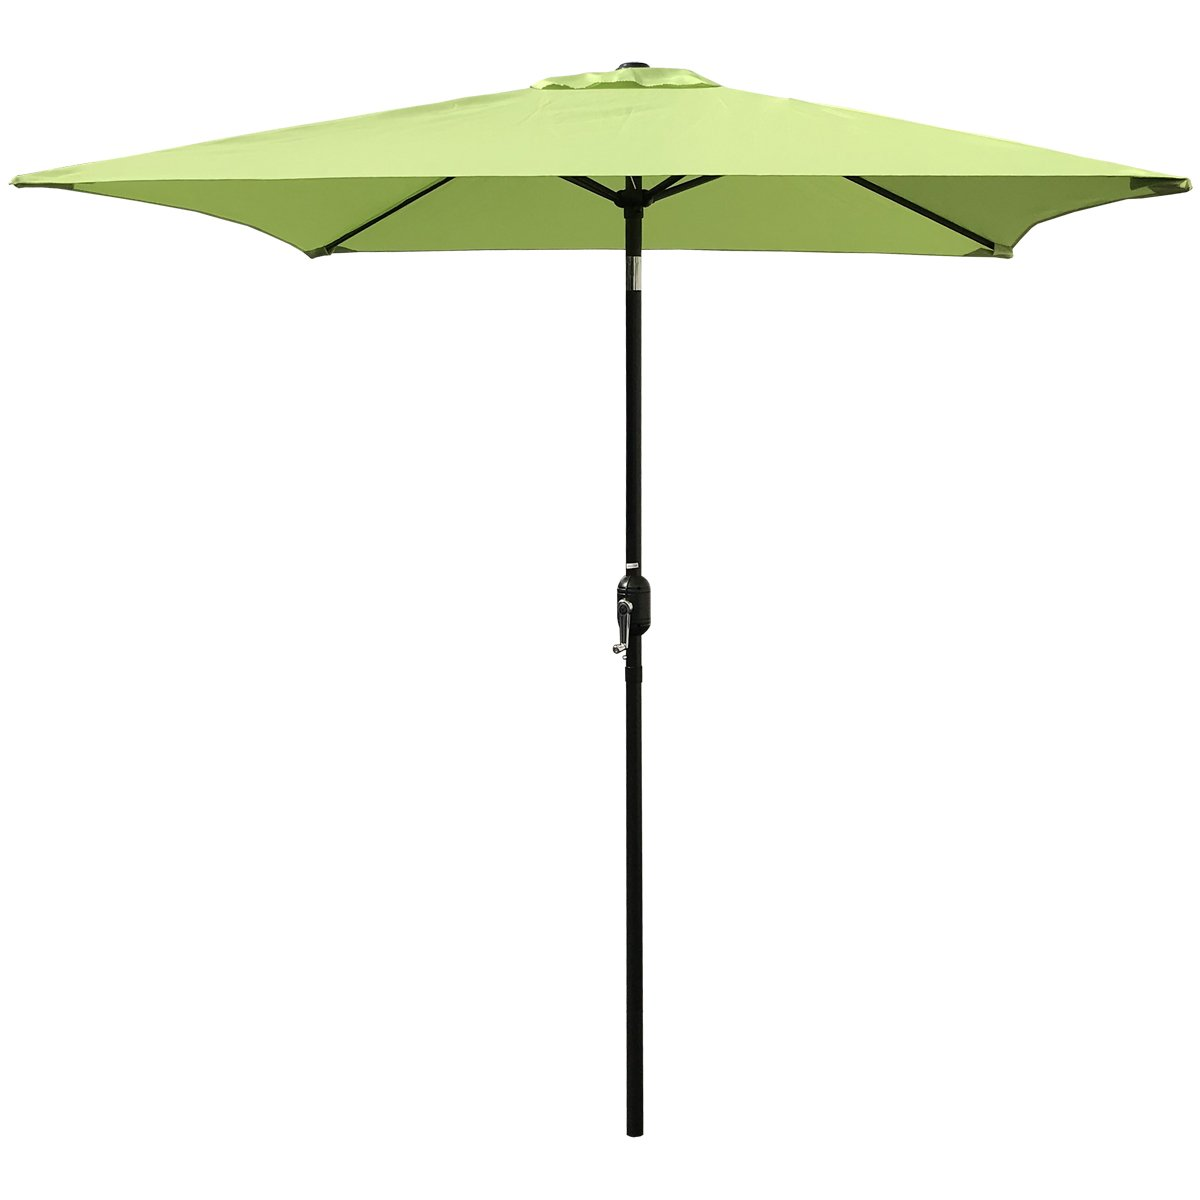 ABBLE Outdoor Patio Umbrella 6.5 Ft Square with Tilt and Crank, Weather Resistant, UV Protective Umbrella, Durable, 6 Sturdy Steel Ribs, Market Outdoor Table Umbrella, Lime Green